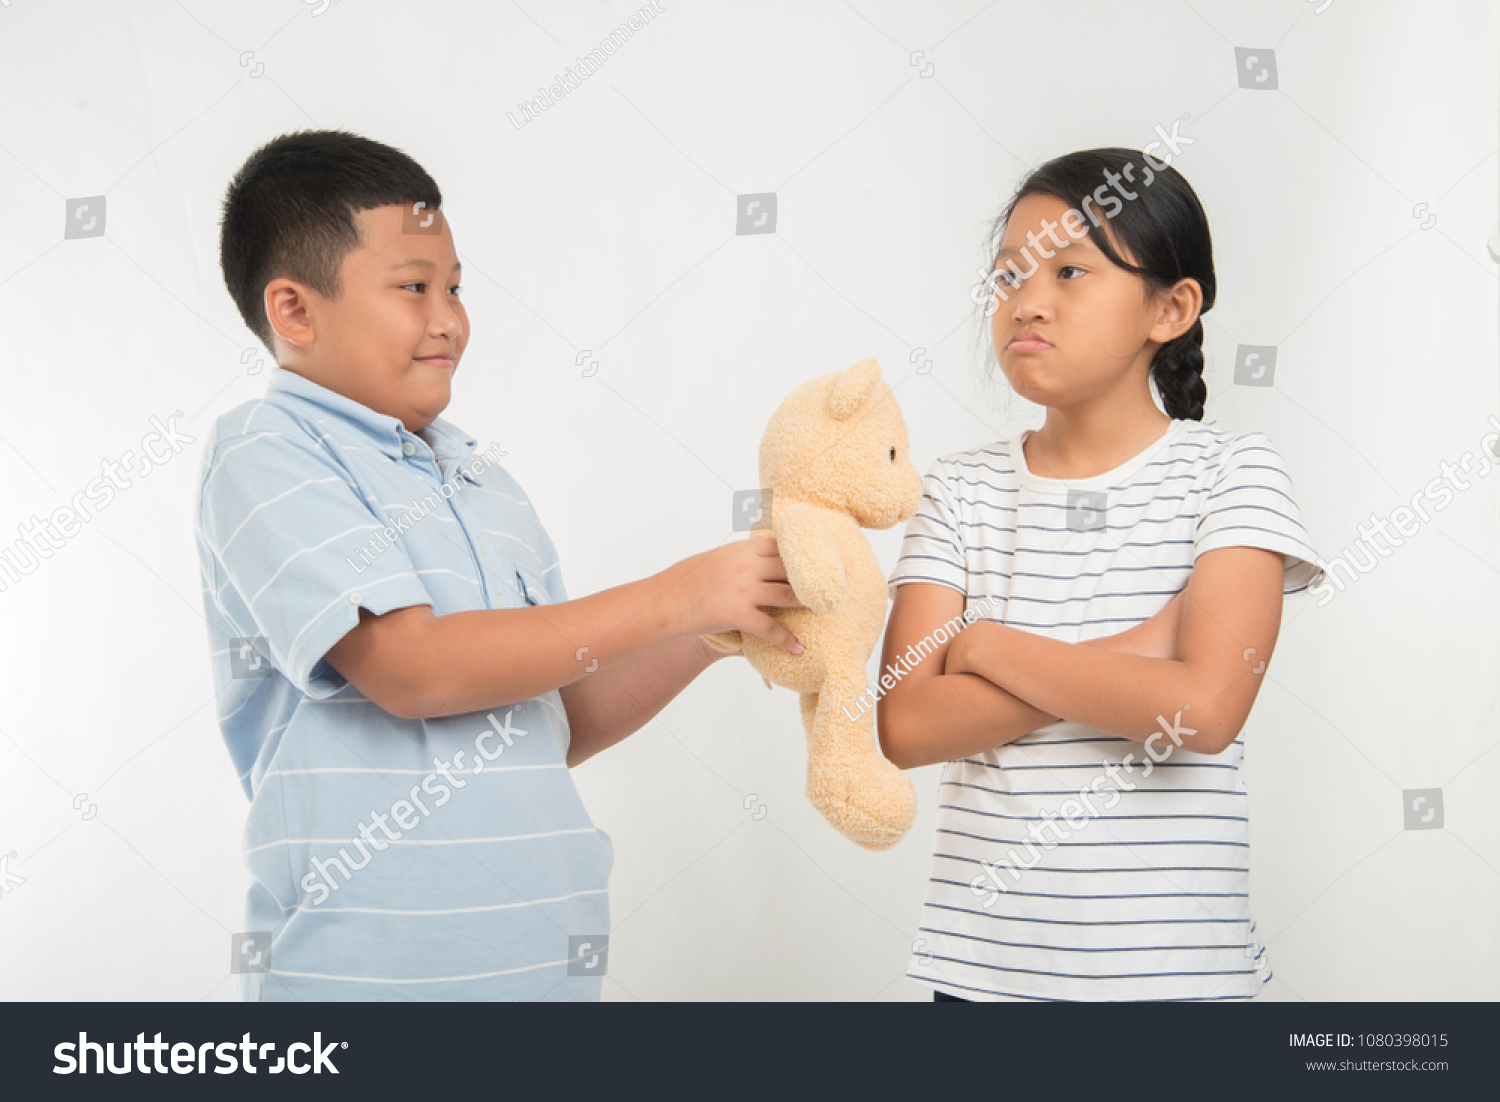 Girl Angry Boy Each Other When Stock Photo Edit Now 1080398015